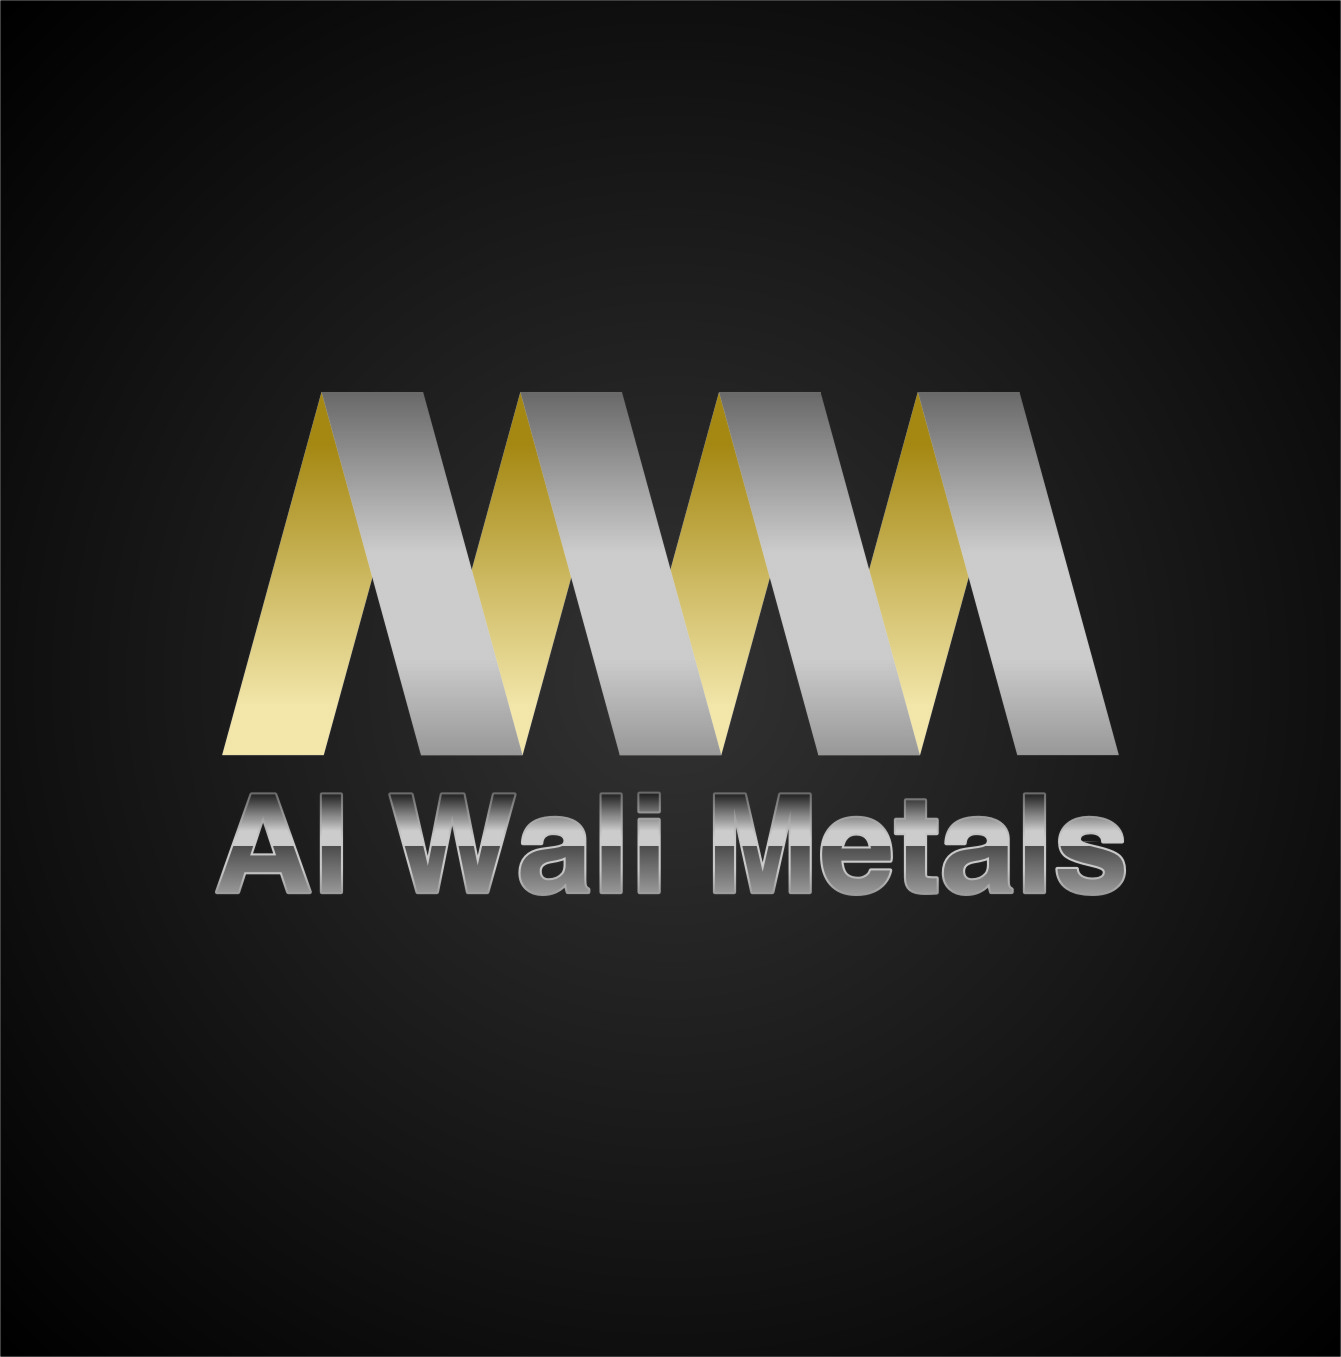 Logo Design by RasYa Muhammad Athaya - Entry No. 138 in the Logo Design Contest Inspiring Logo Design for Al Wali Metals.